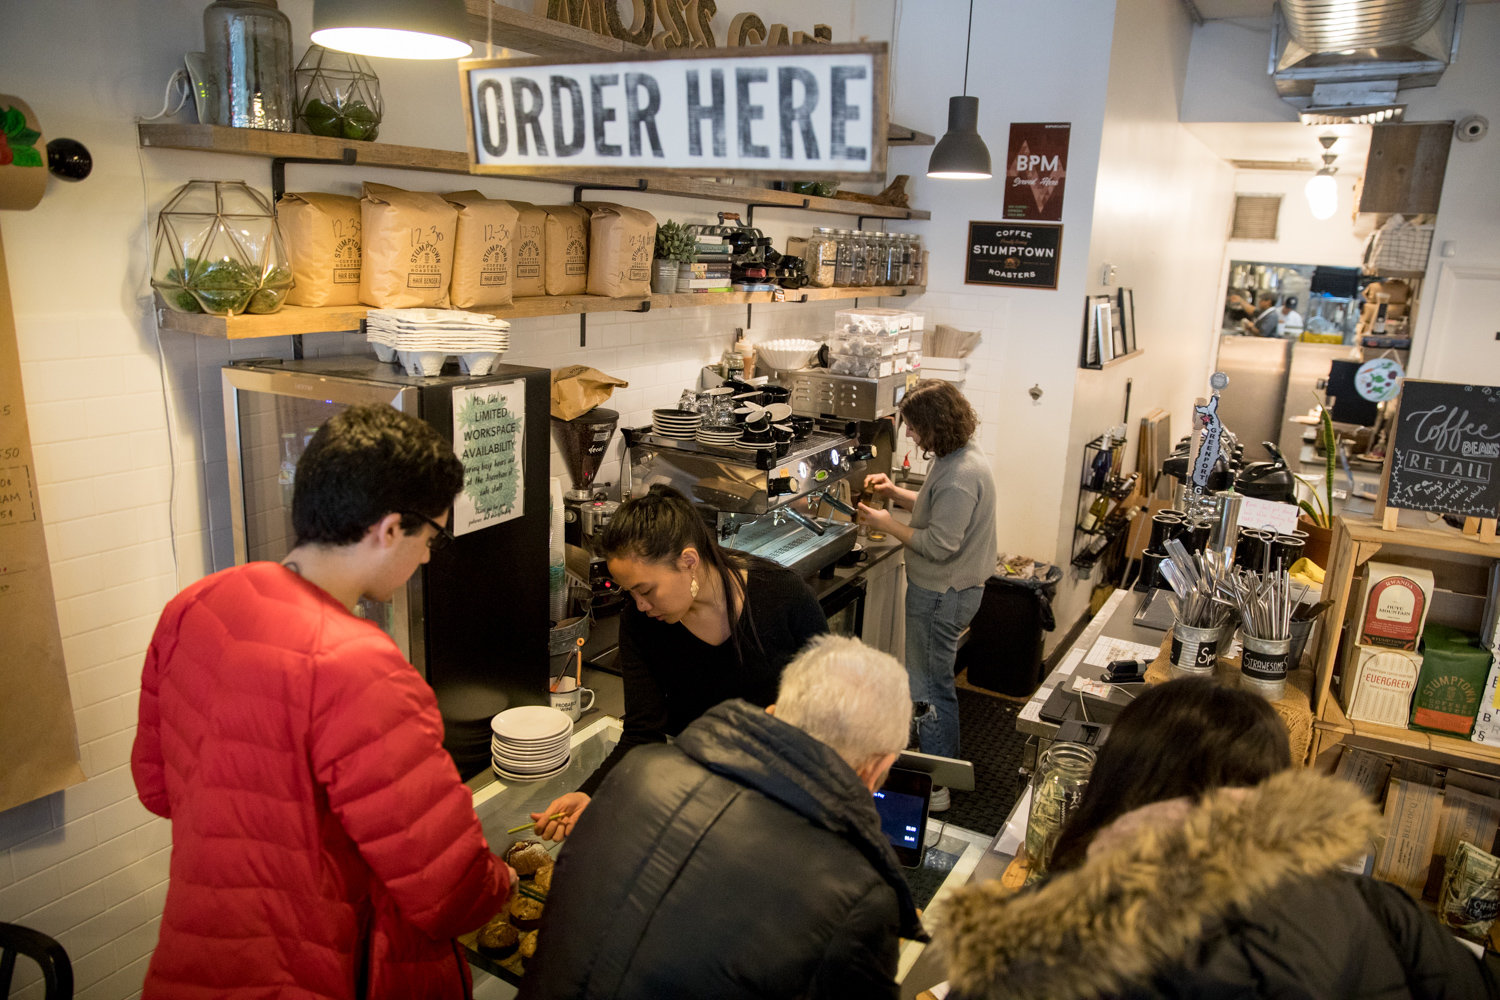 Customers place their orders at Moss Café on Johnson Avenue. With the new minimum wage law going into effect, owner Emily Weisberg looked to see where she could cut expenses to ensure she could pay her employees properly. Still, she recognizes that $15 an hour is not a living wage in New York City.